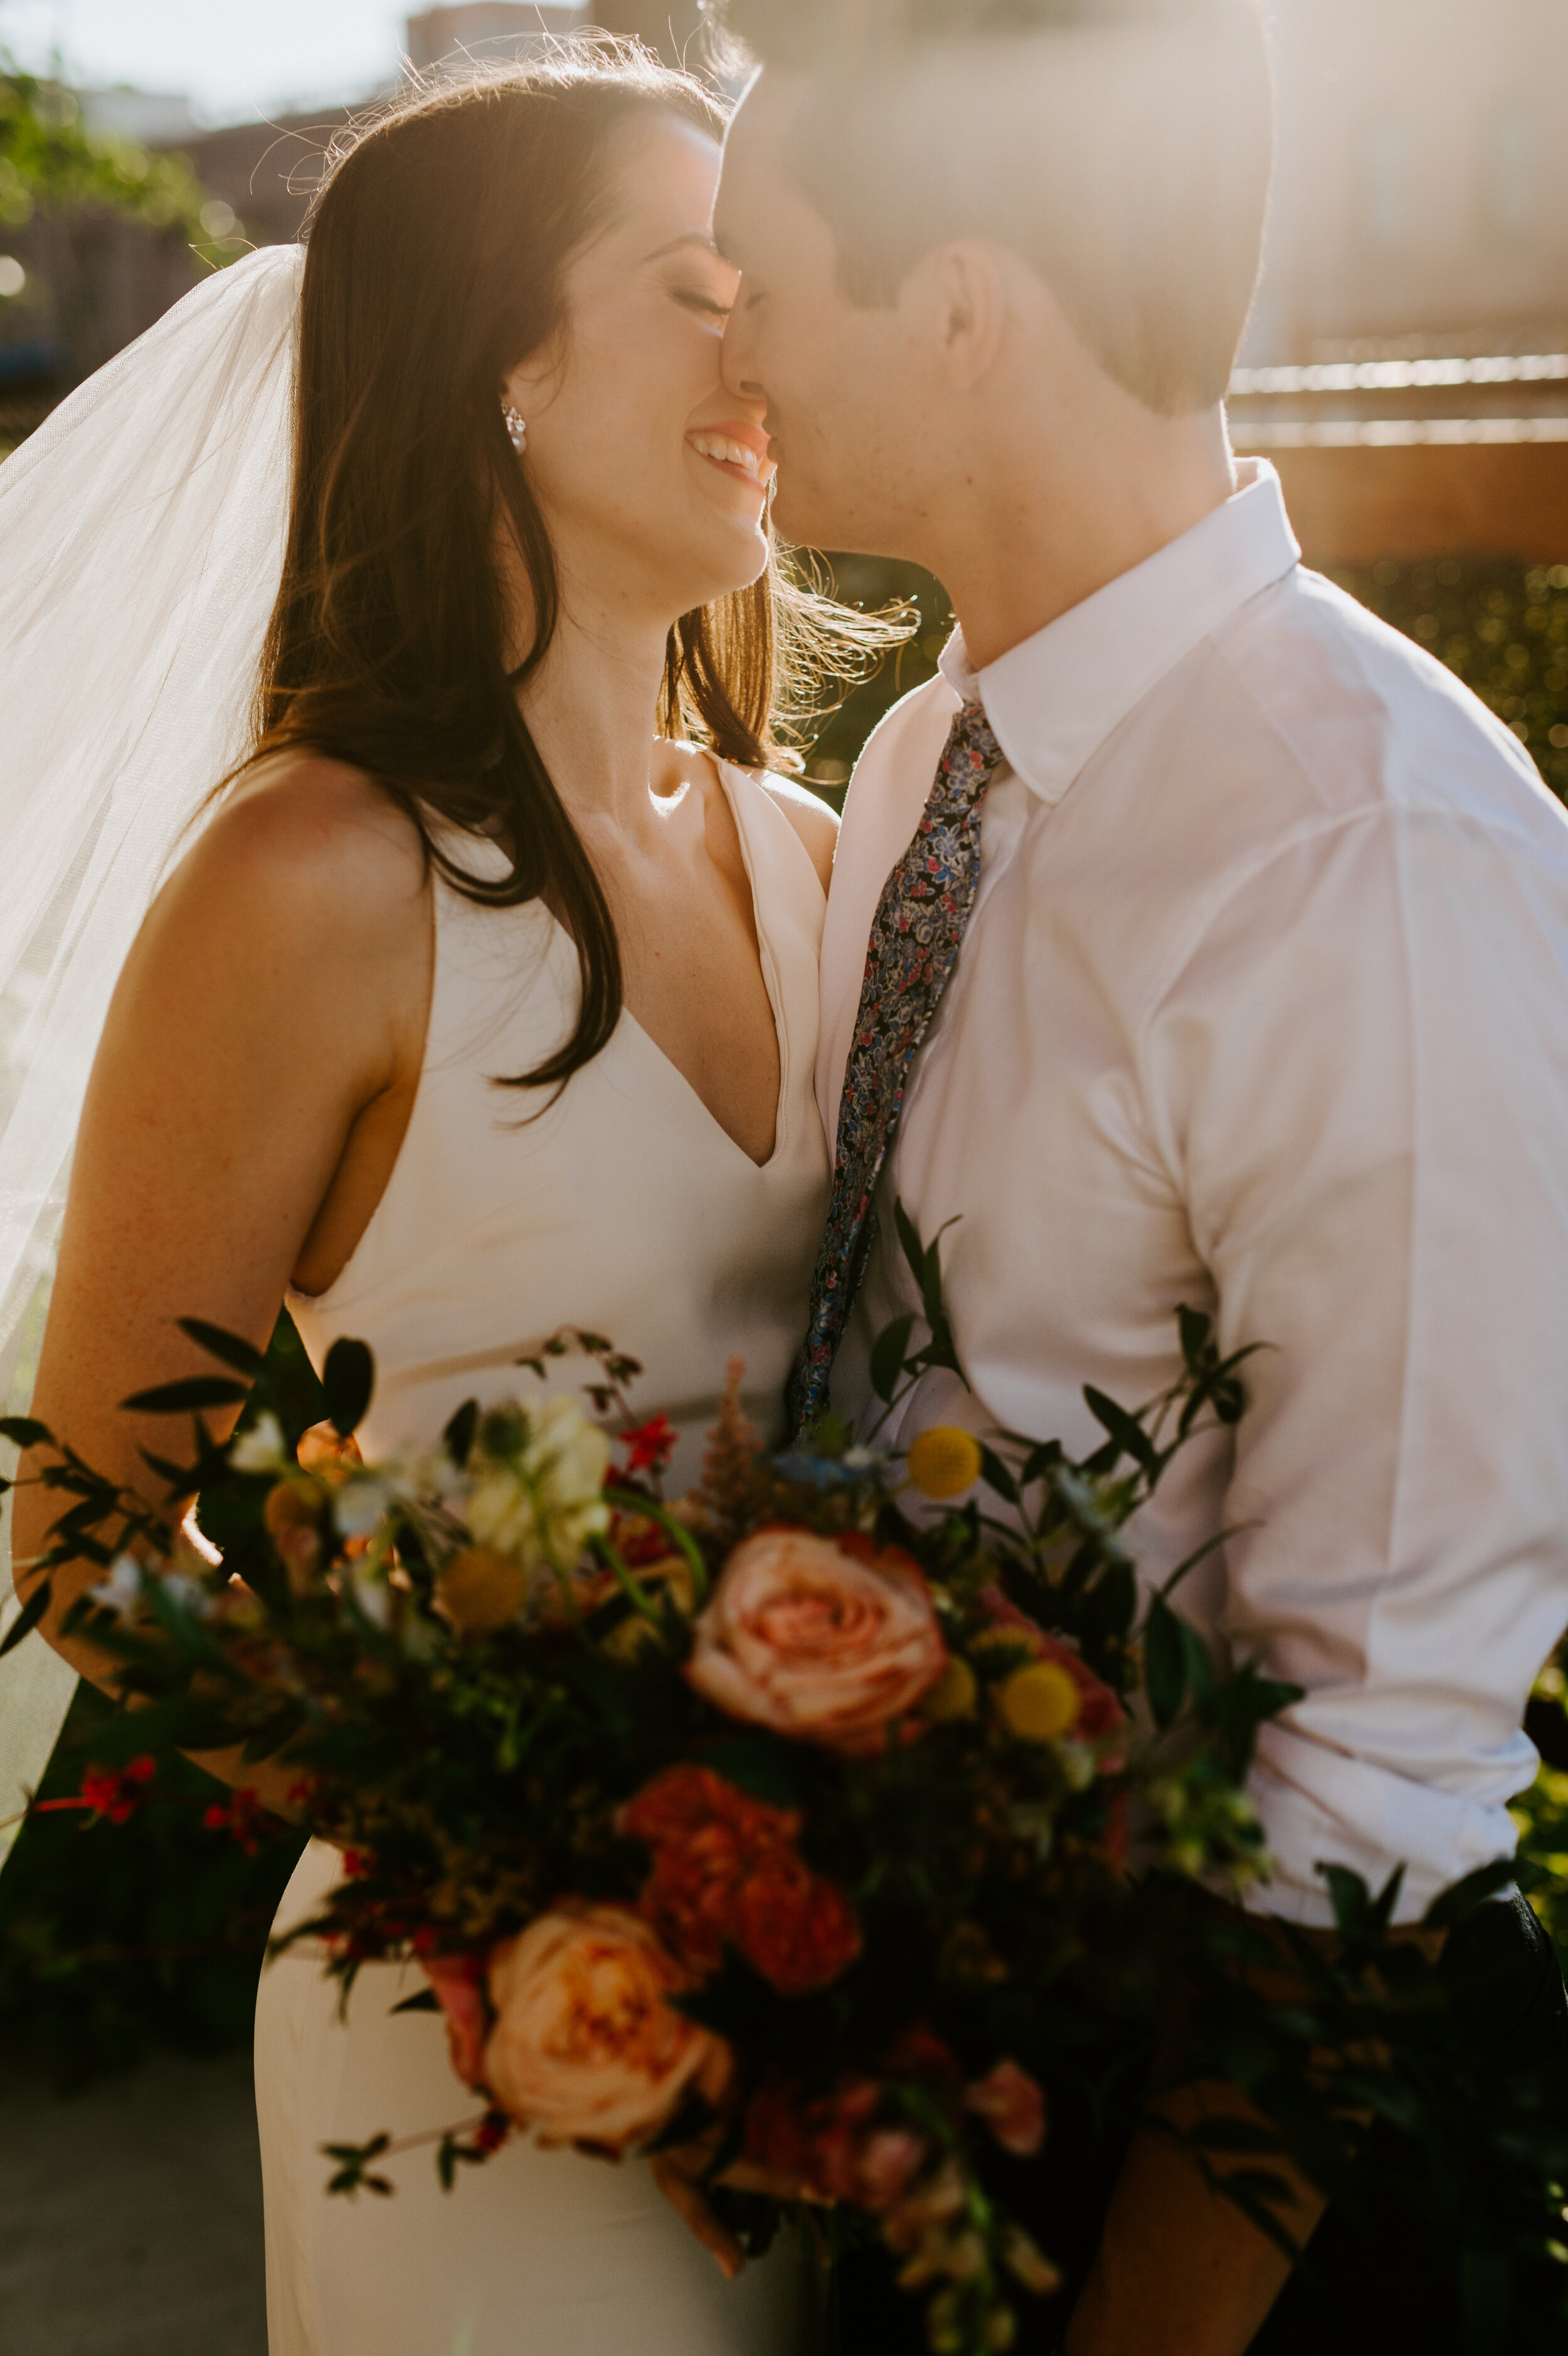 """""""Melissa is simply amazing … - it was a true collaboration, which made seeing the final product even more special! She is a true professional and I trusted her throughout the entire process. I would hire Passiflora Farm again in a heartbeat and highly recommend to anyone who wants gorgeous floral to liven up their venue!"""" - Leah"""